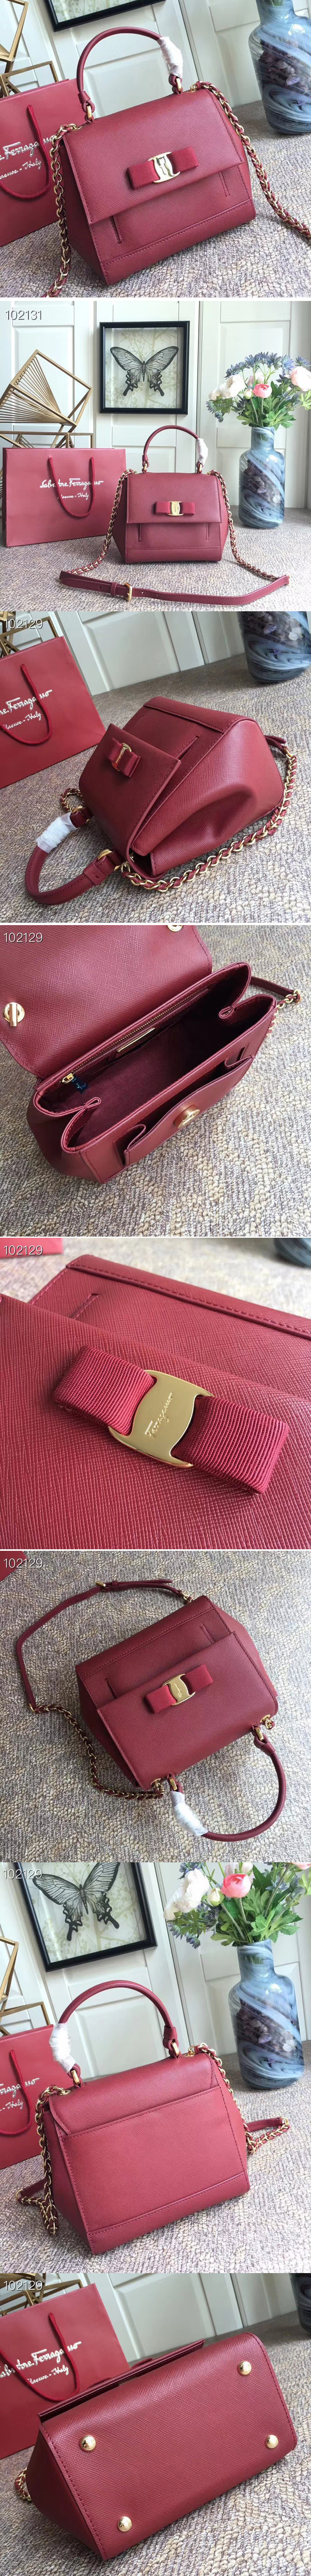 Replica Ferragamo 21F570 Carrie Nero Top Handle Handbags In Bordeaux Calfskin Leather